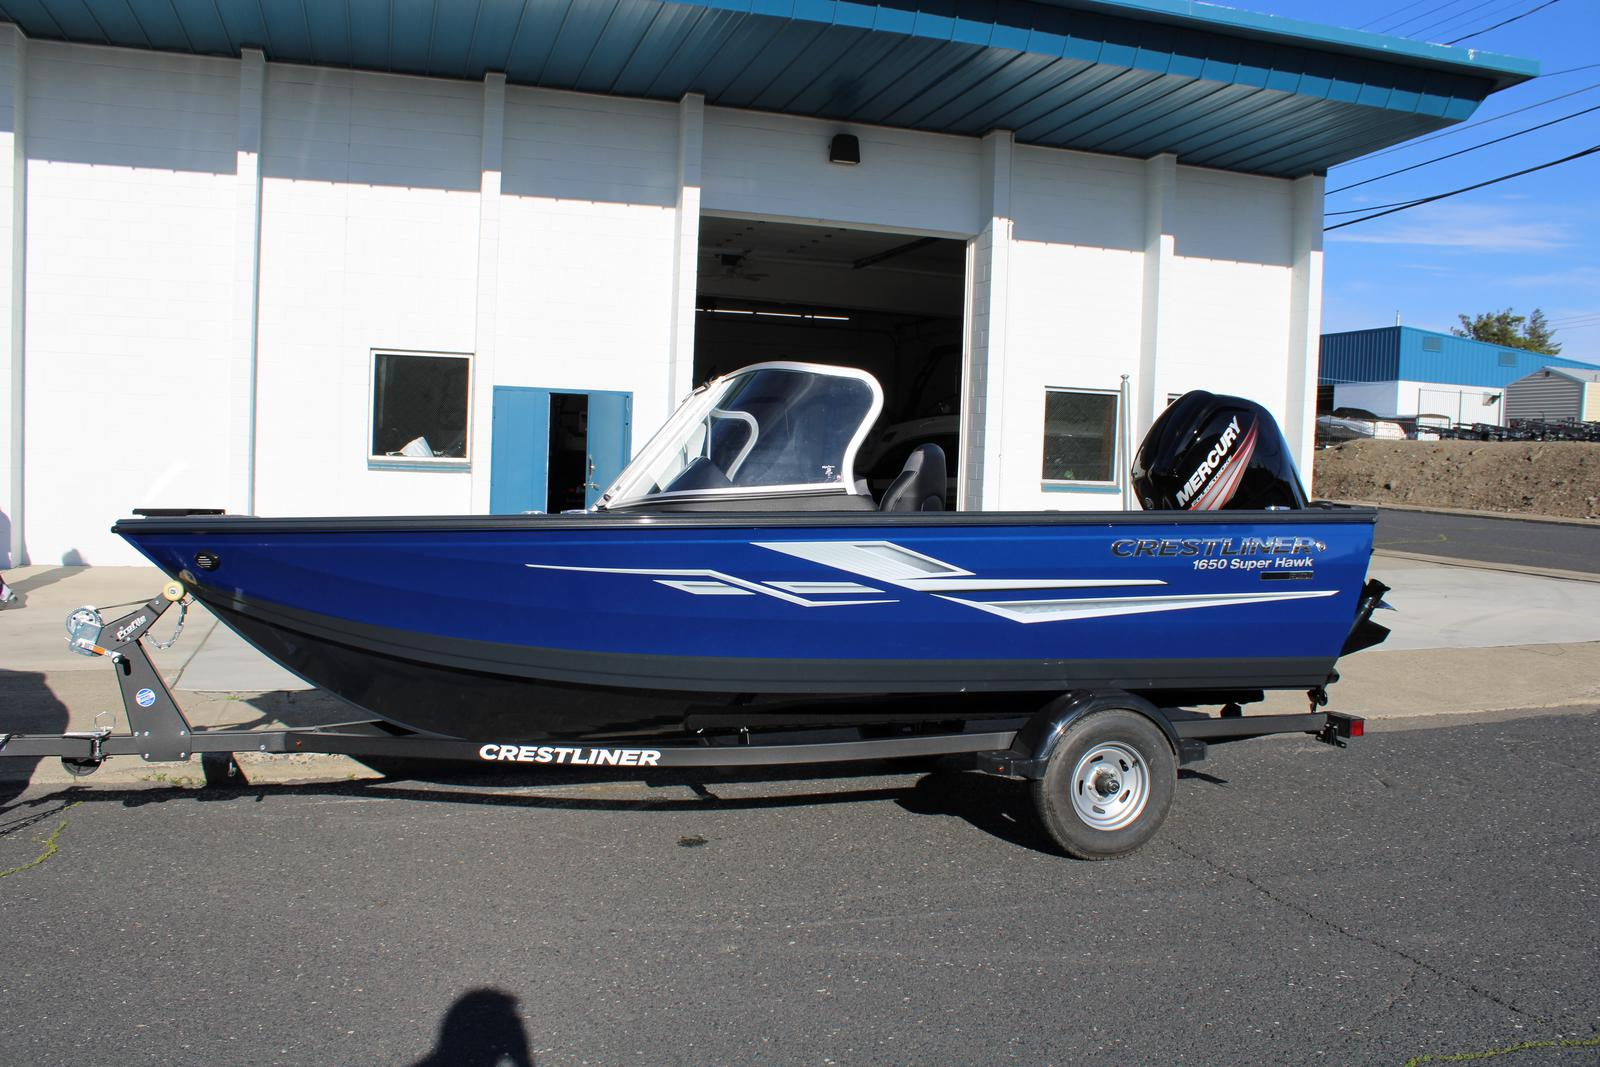 2019 Crestliner boat for sale, model of the boat is 1650 Super Hawk & Image # 1 of 6